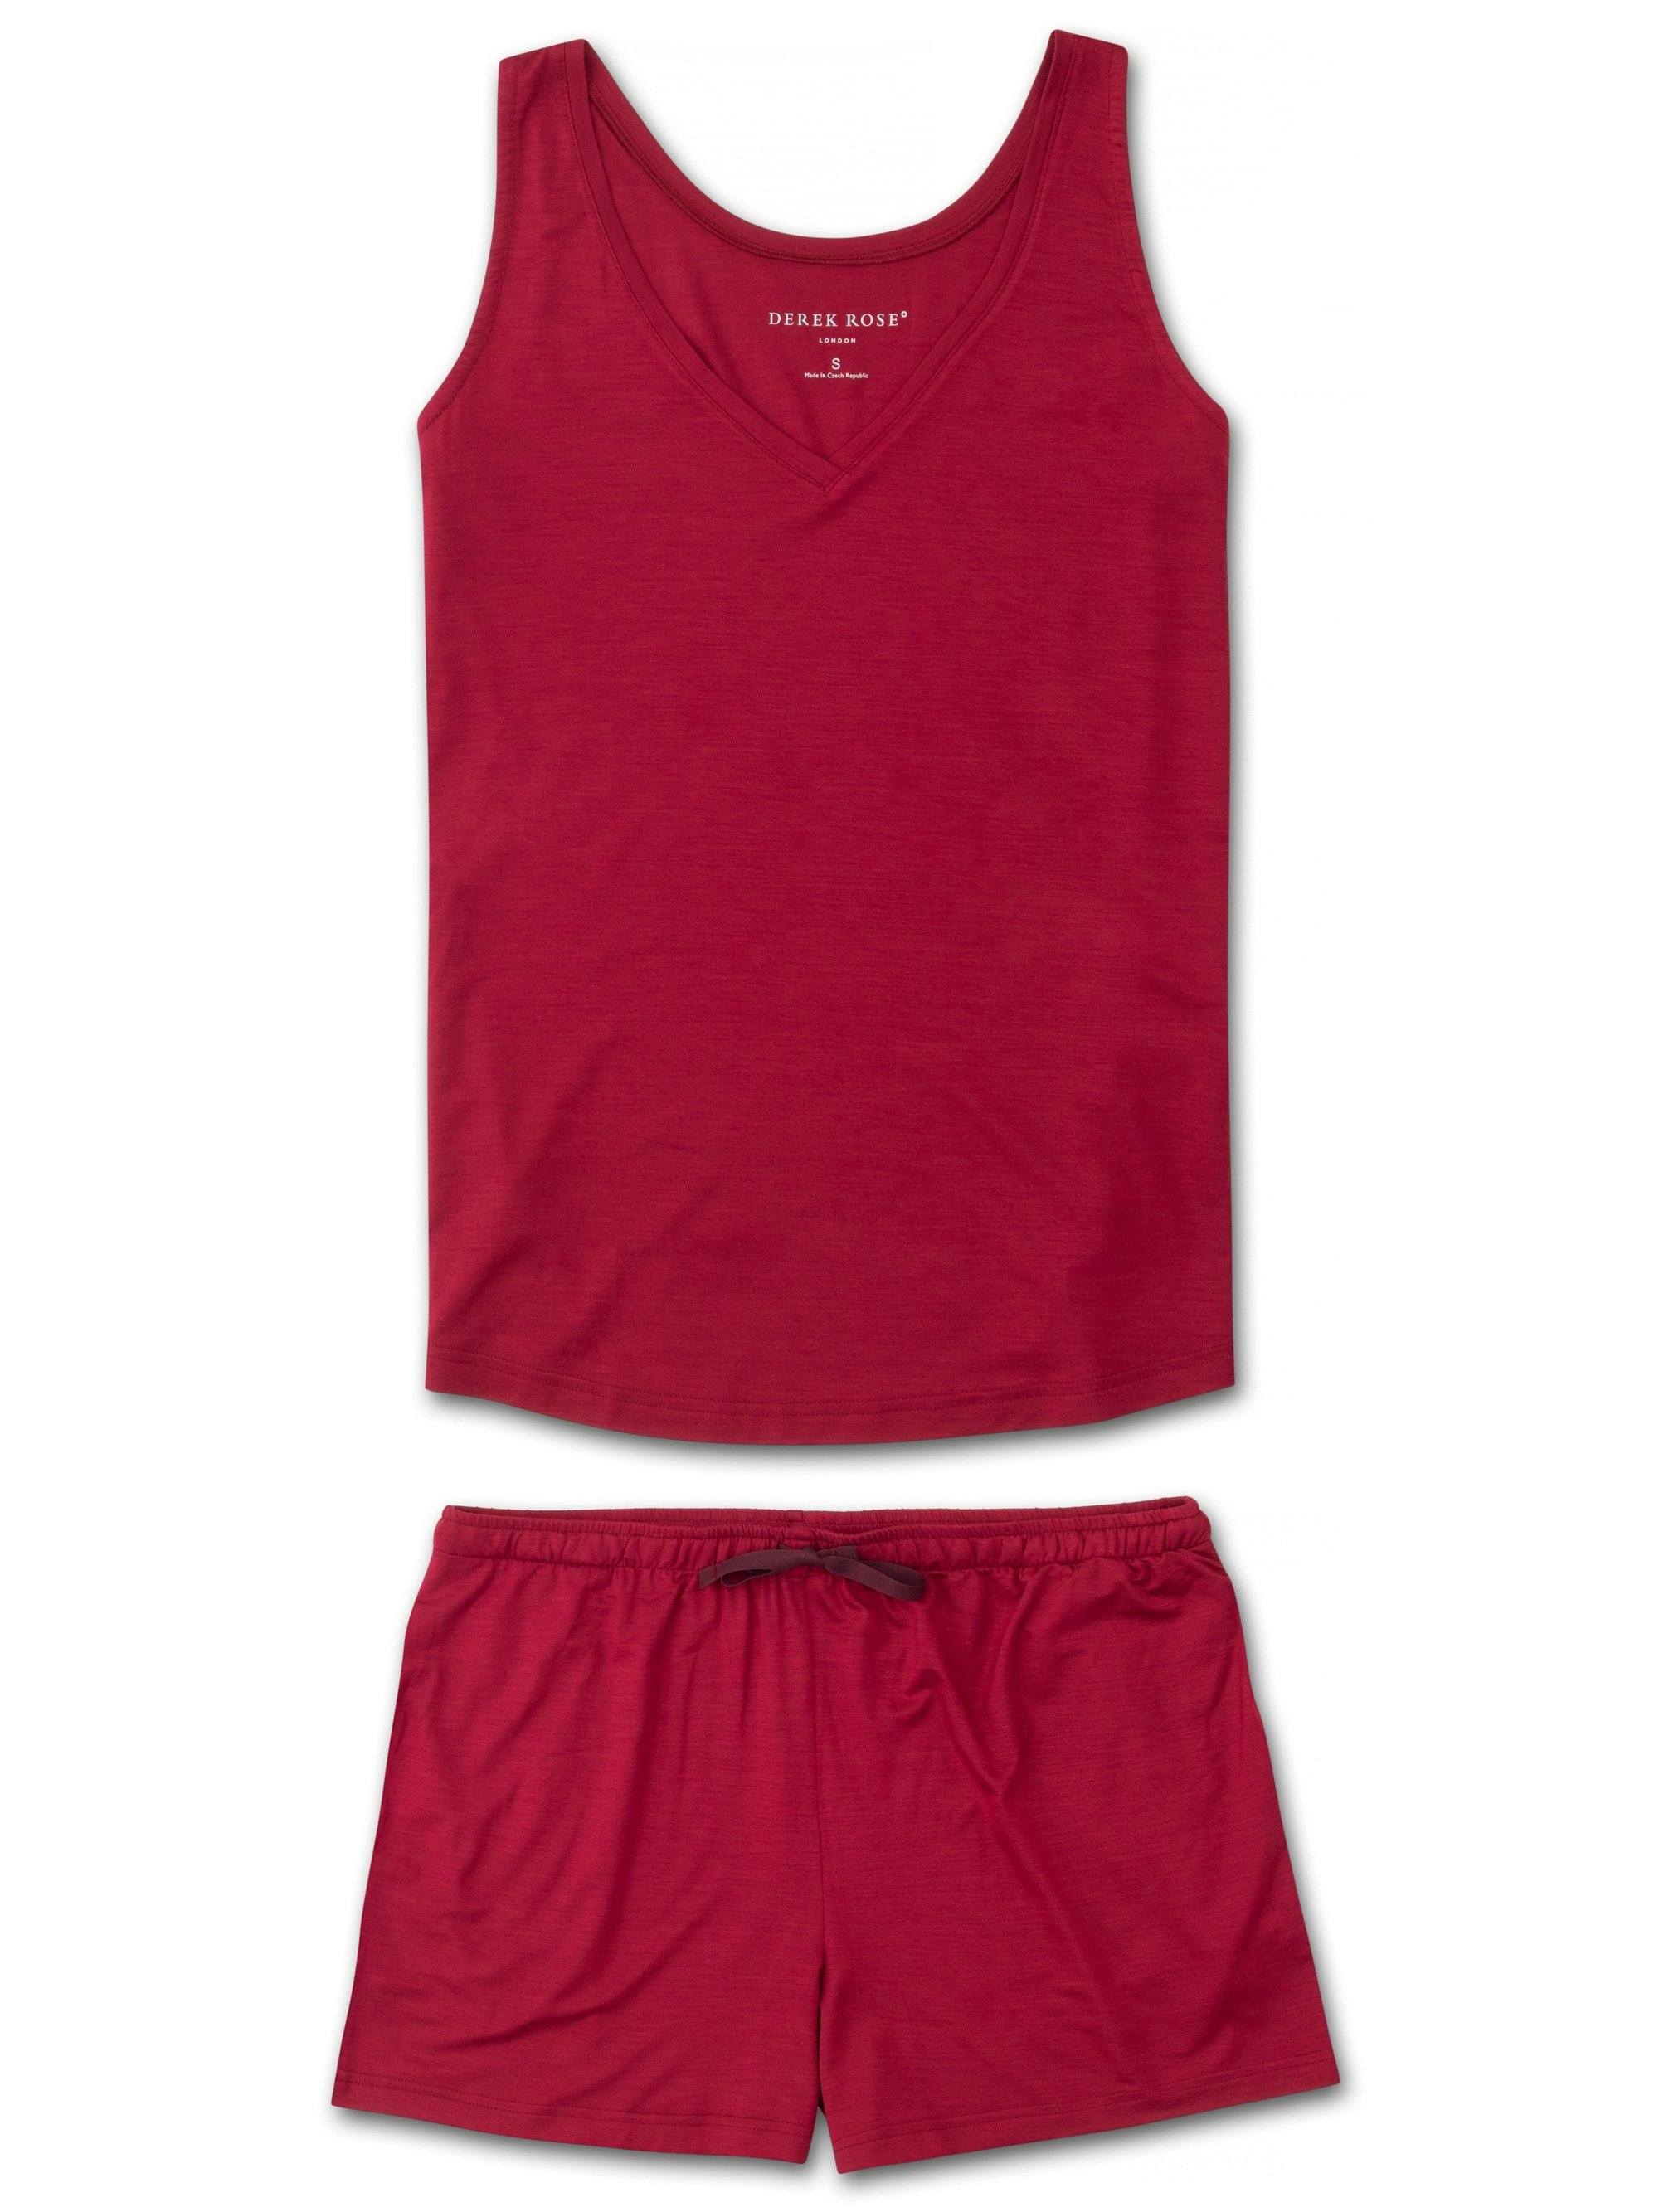 Women's Jersey Vest Short Pyjama Set Lara Micro Modal Stretch Crimson